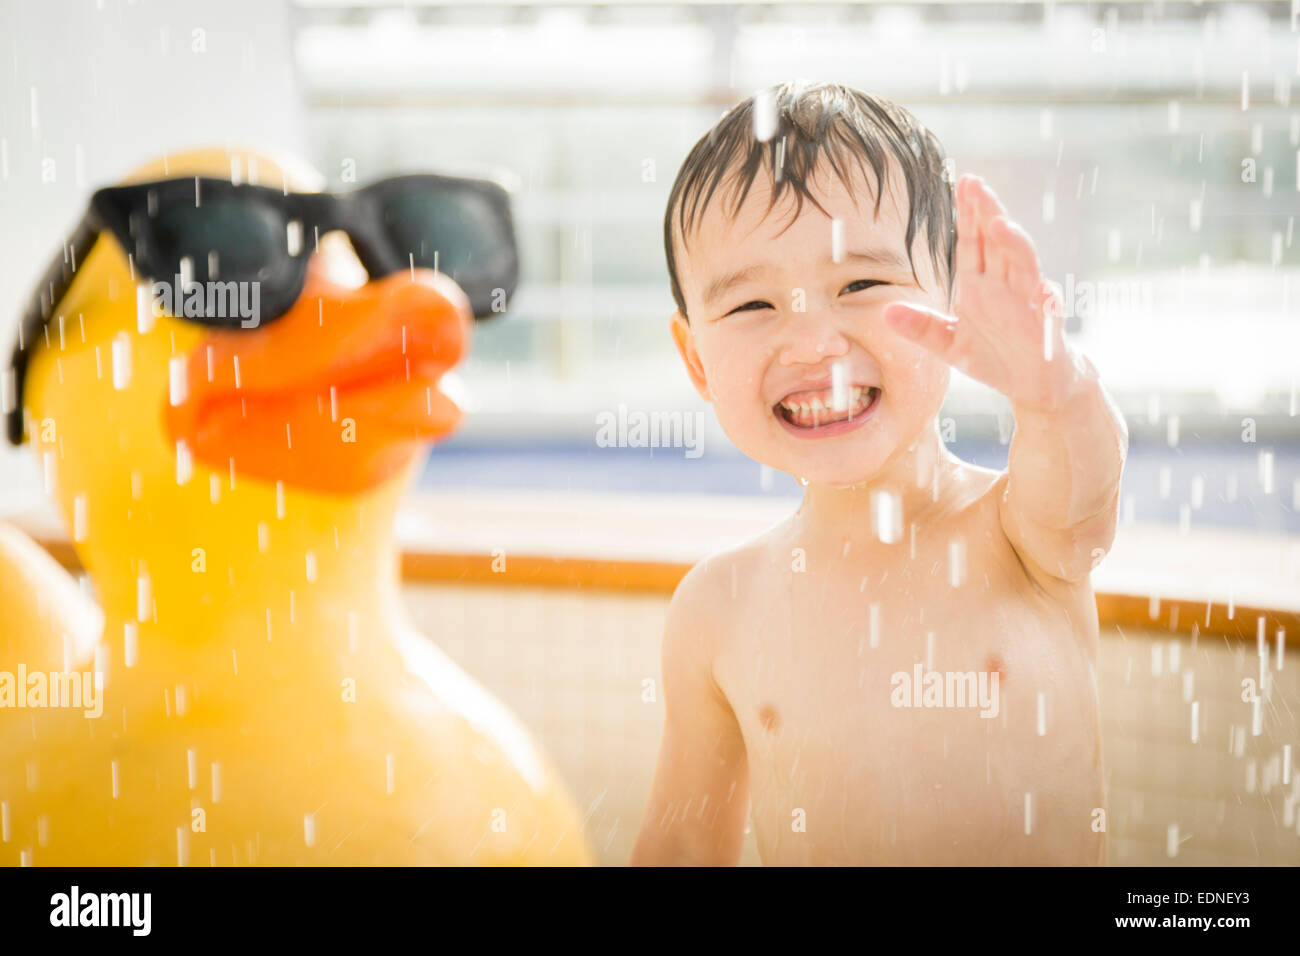 Mixed Race Boy Having Fun at the Water Park with Large Rubber Duck in the Background. - Stock Image